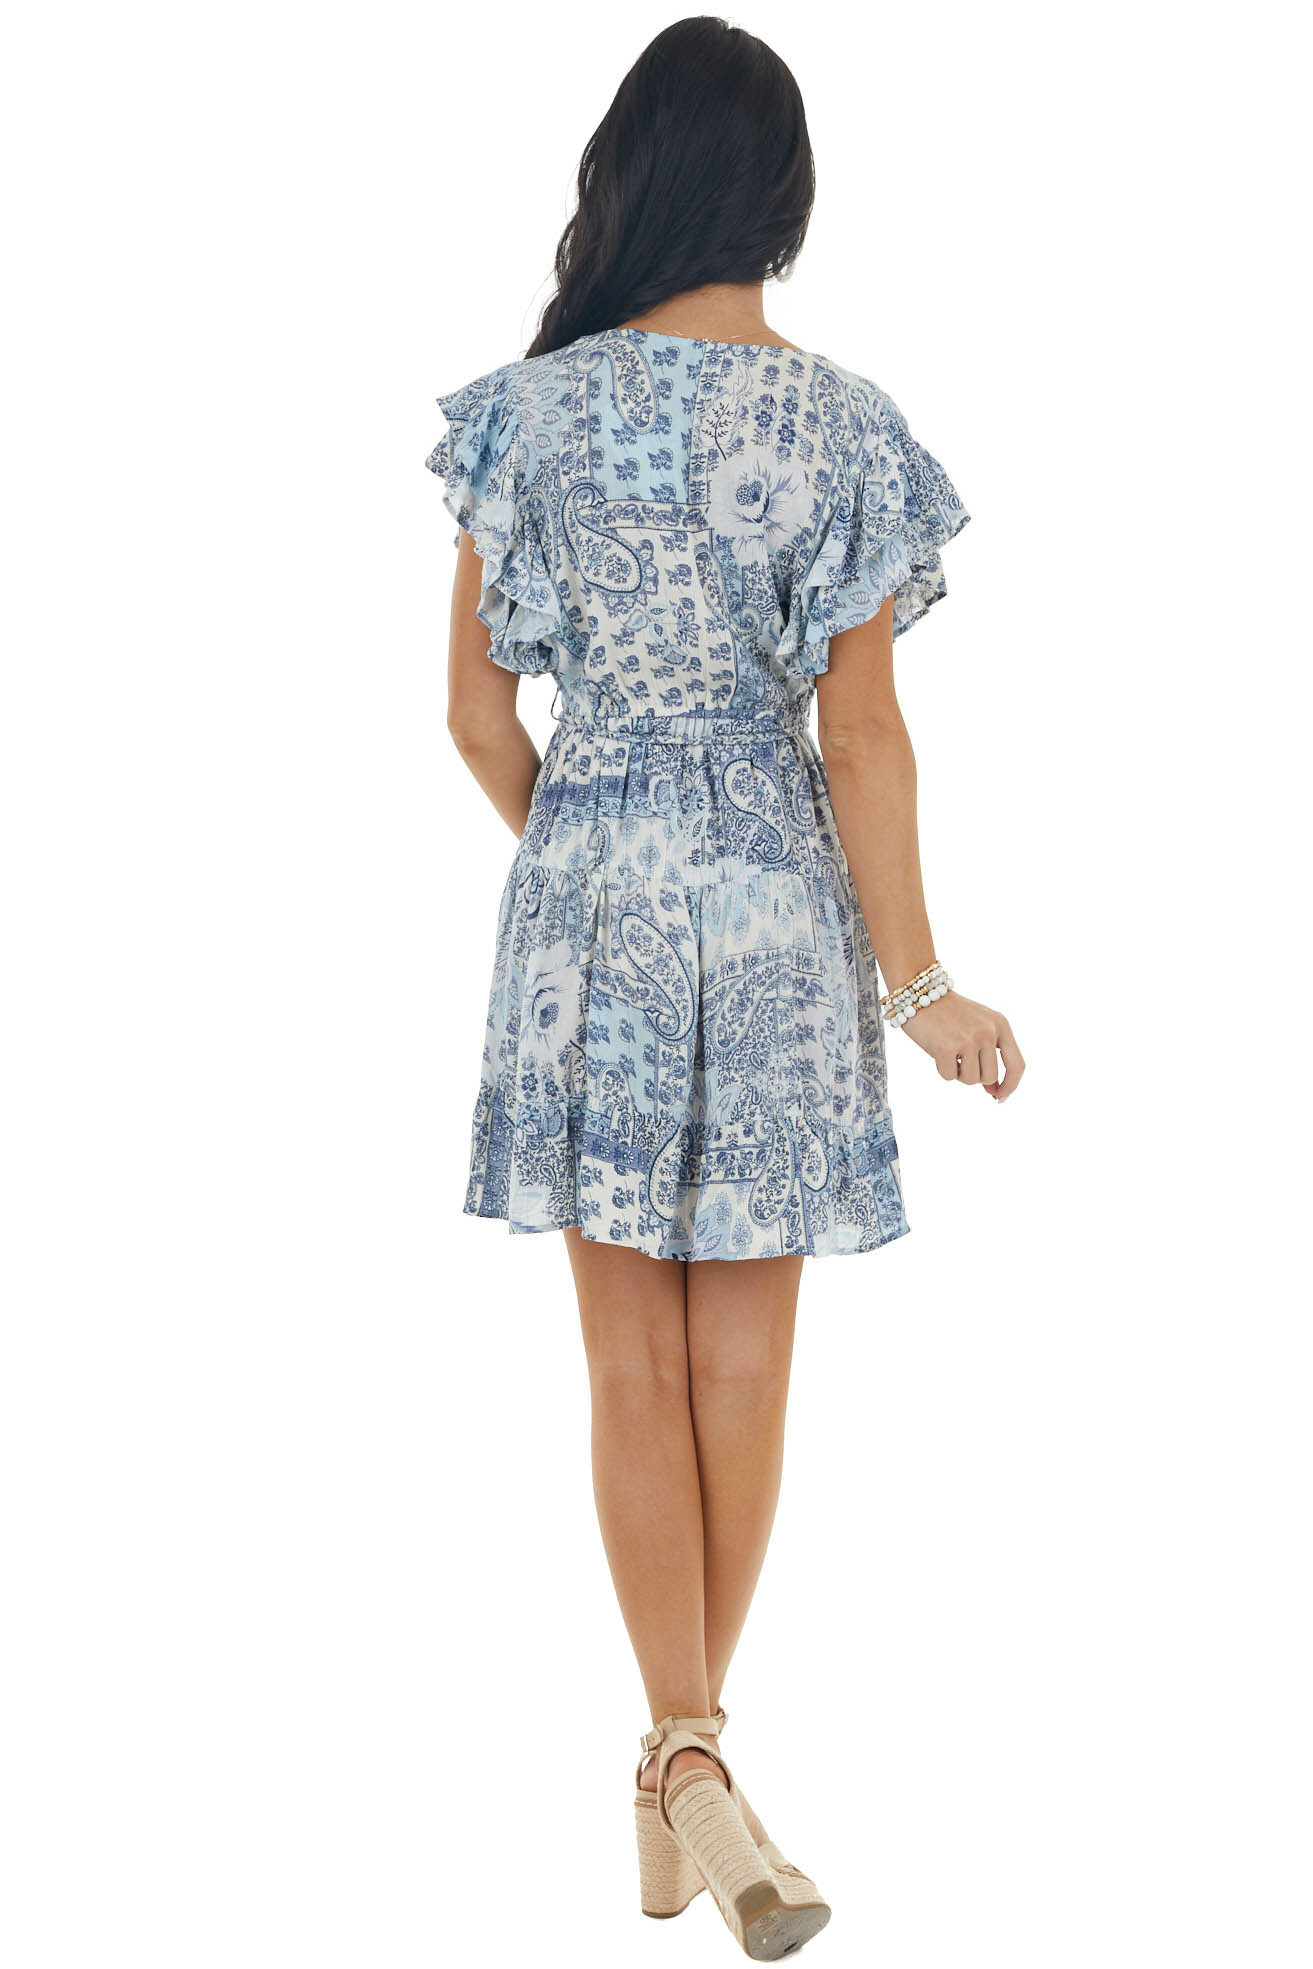 Sky Blue Paisley and Floral Print V Neck Tiered Dress